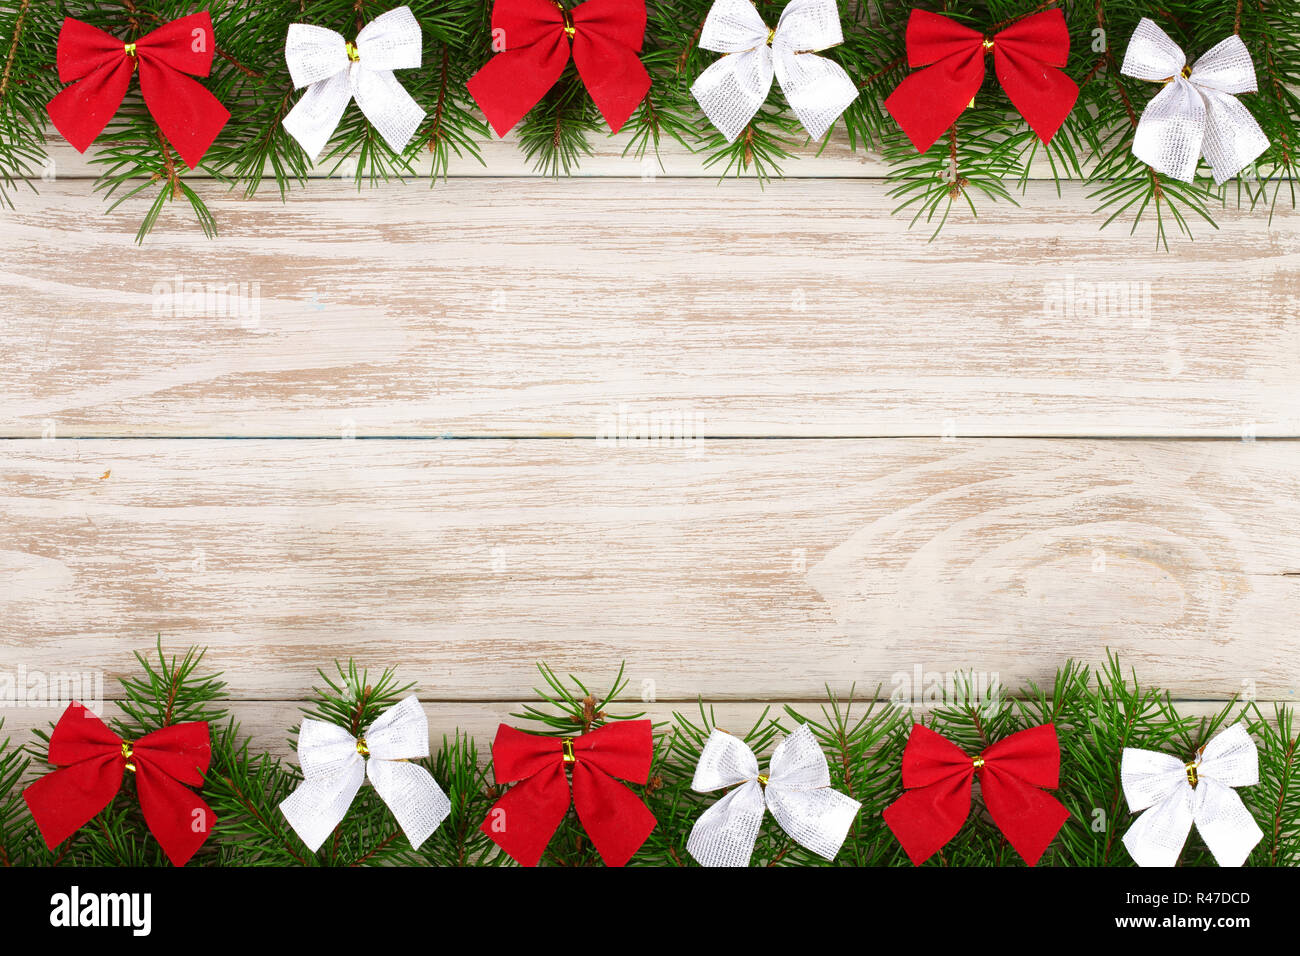 Christmas frame made of fir branches decorated with bows on a light wooden background - Stock Image